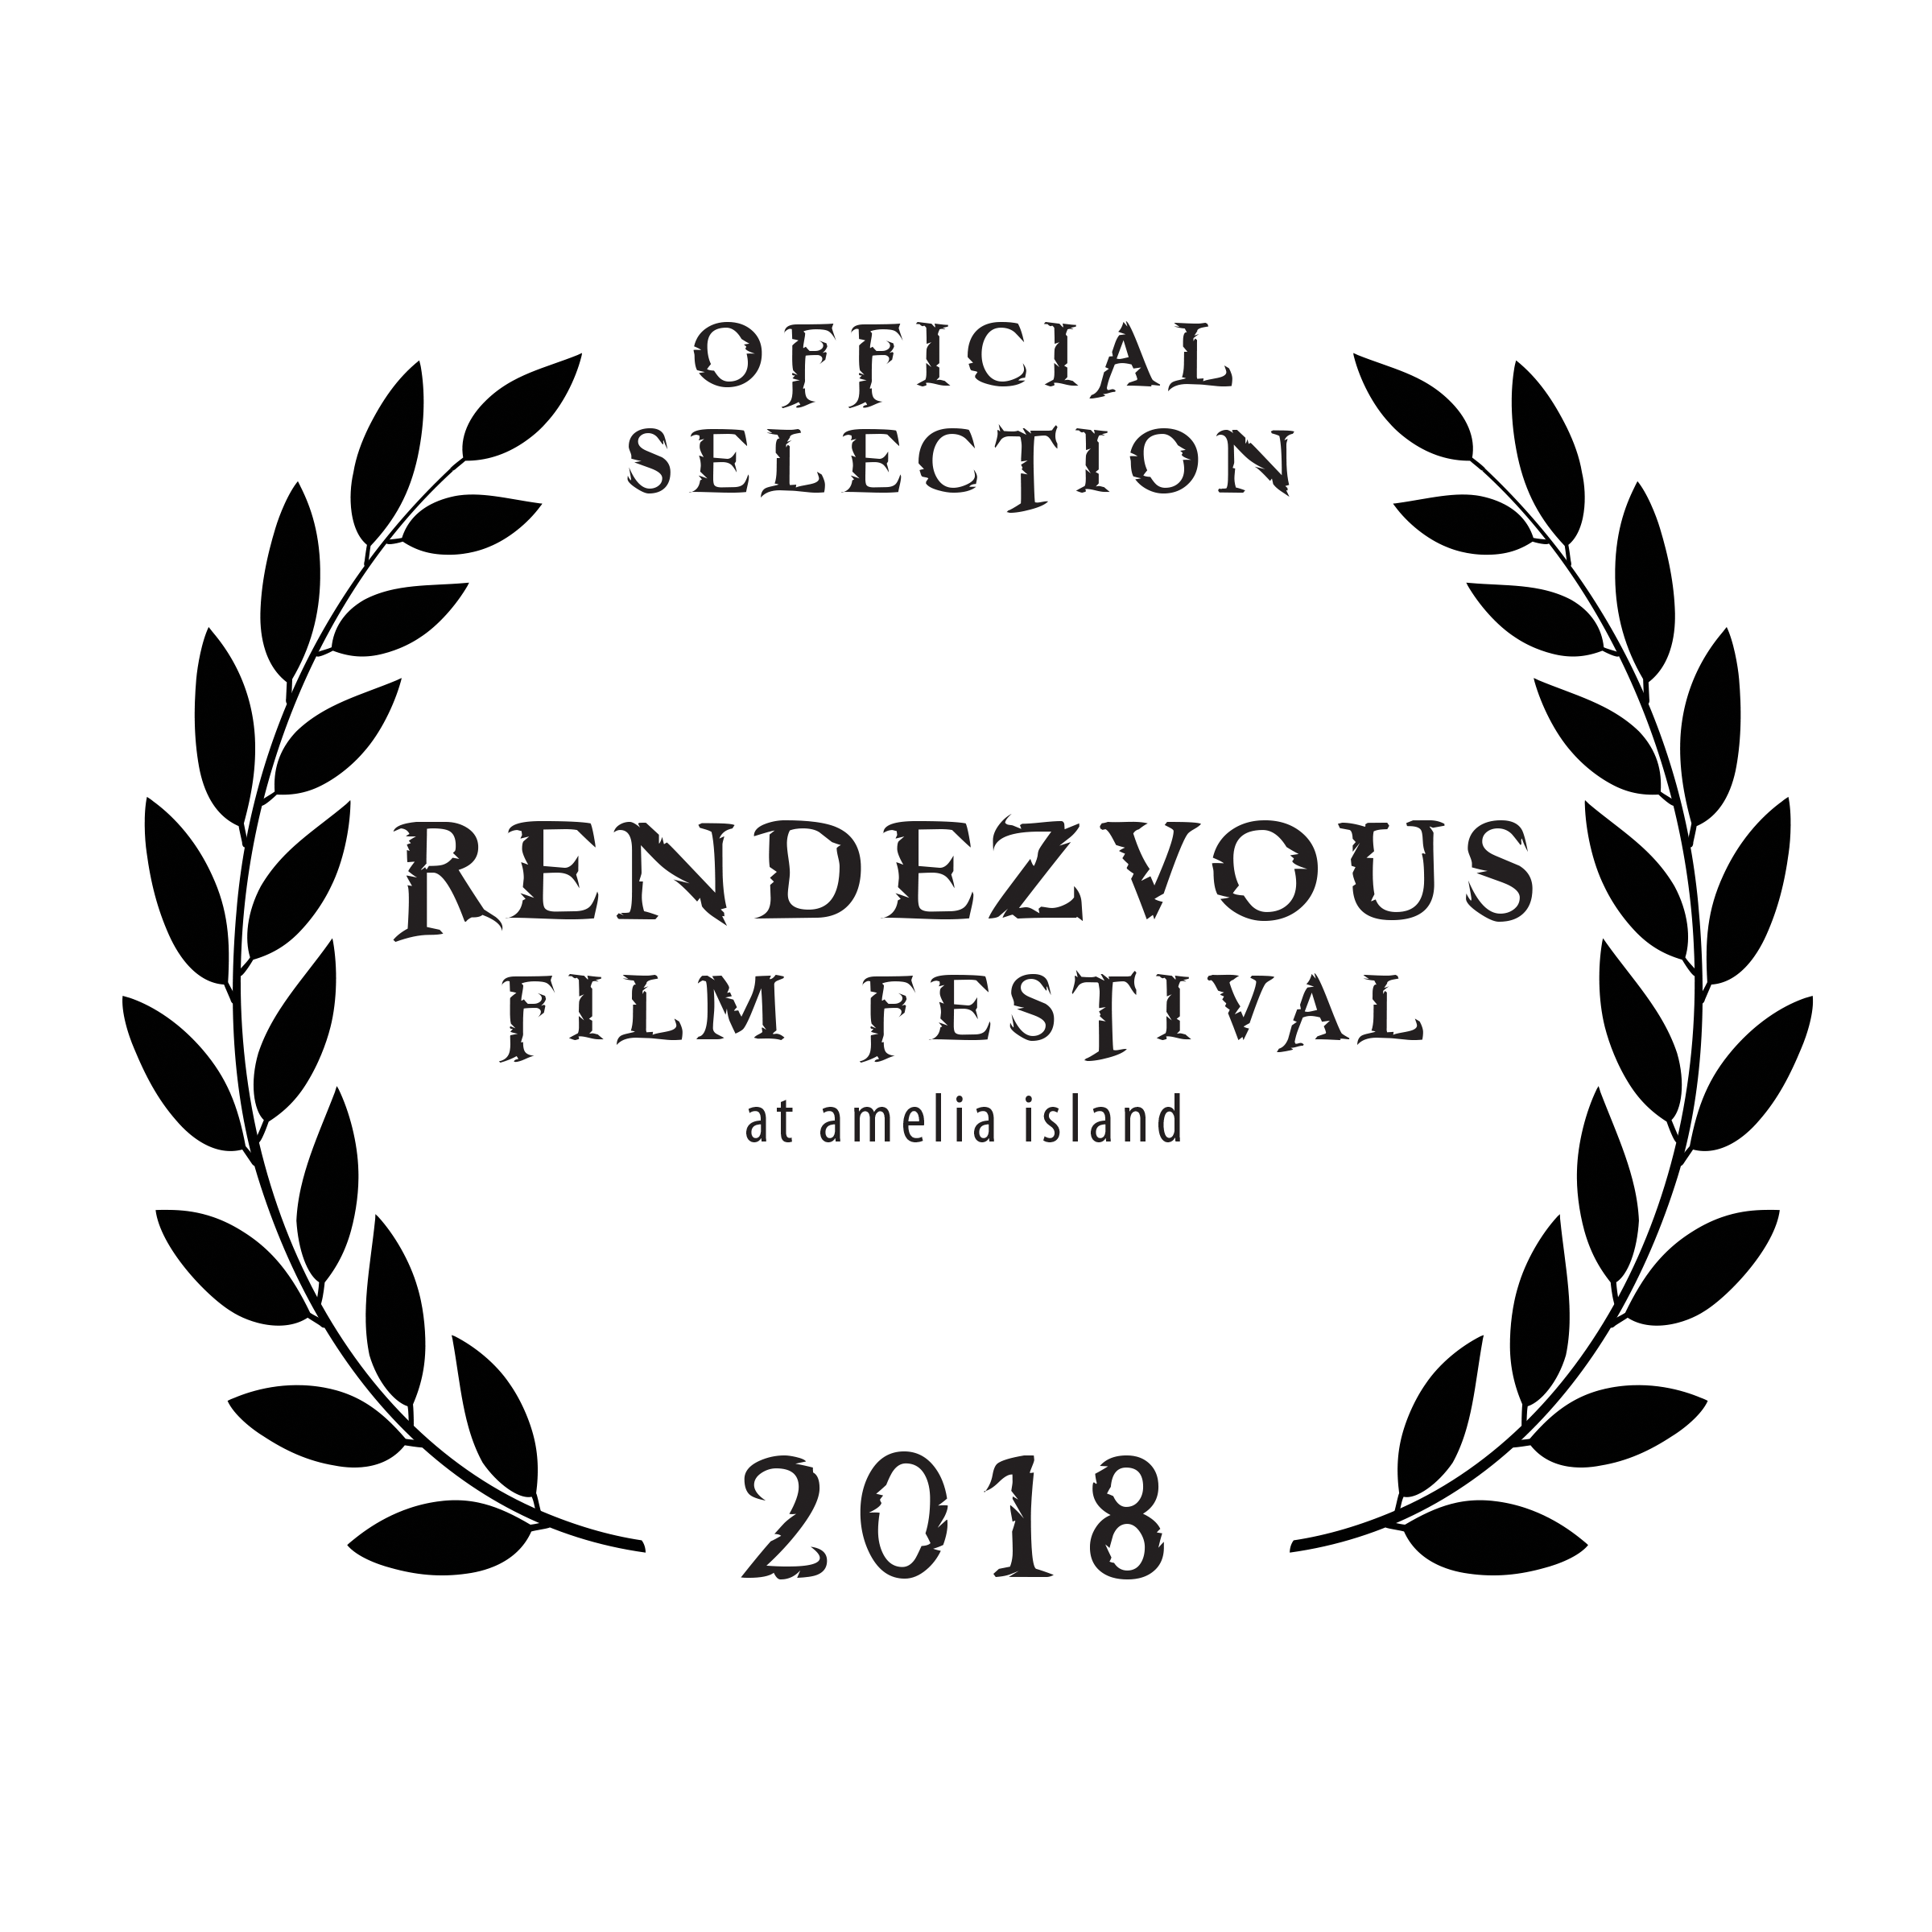 Rendezvous Film Festival at Amelia Island - Official Selection